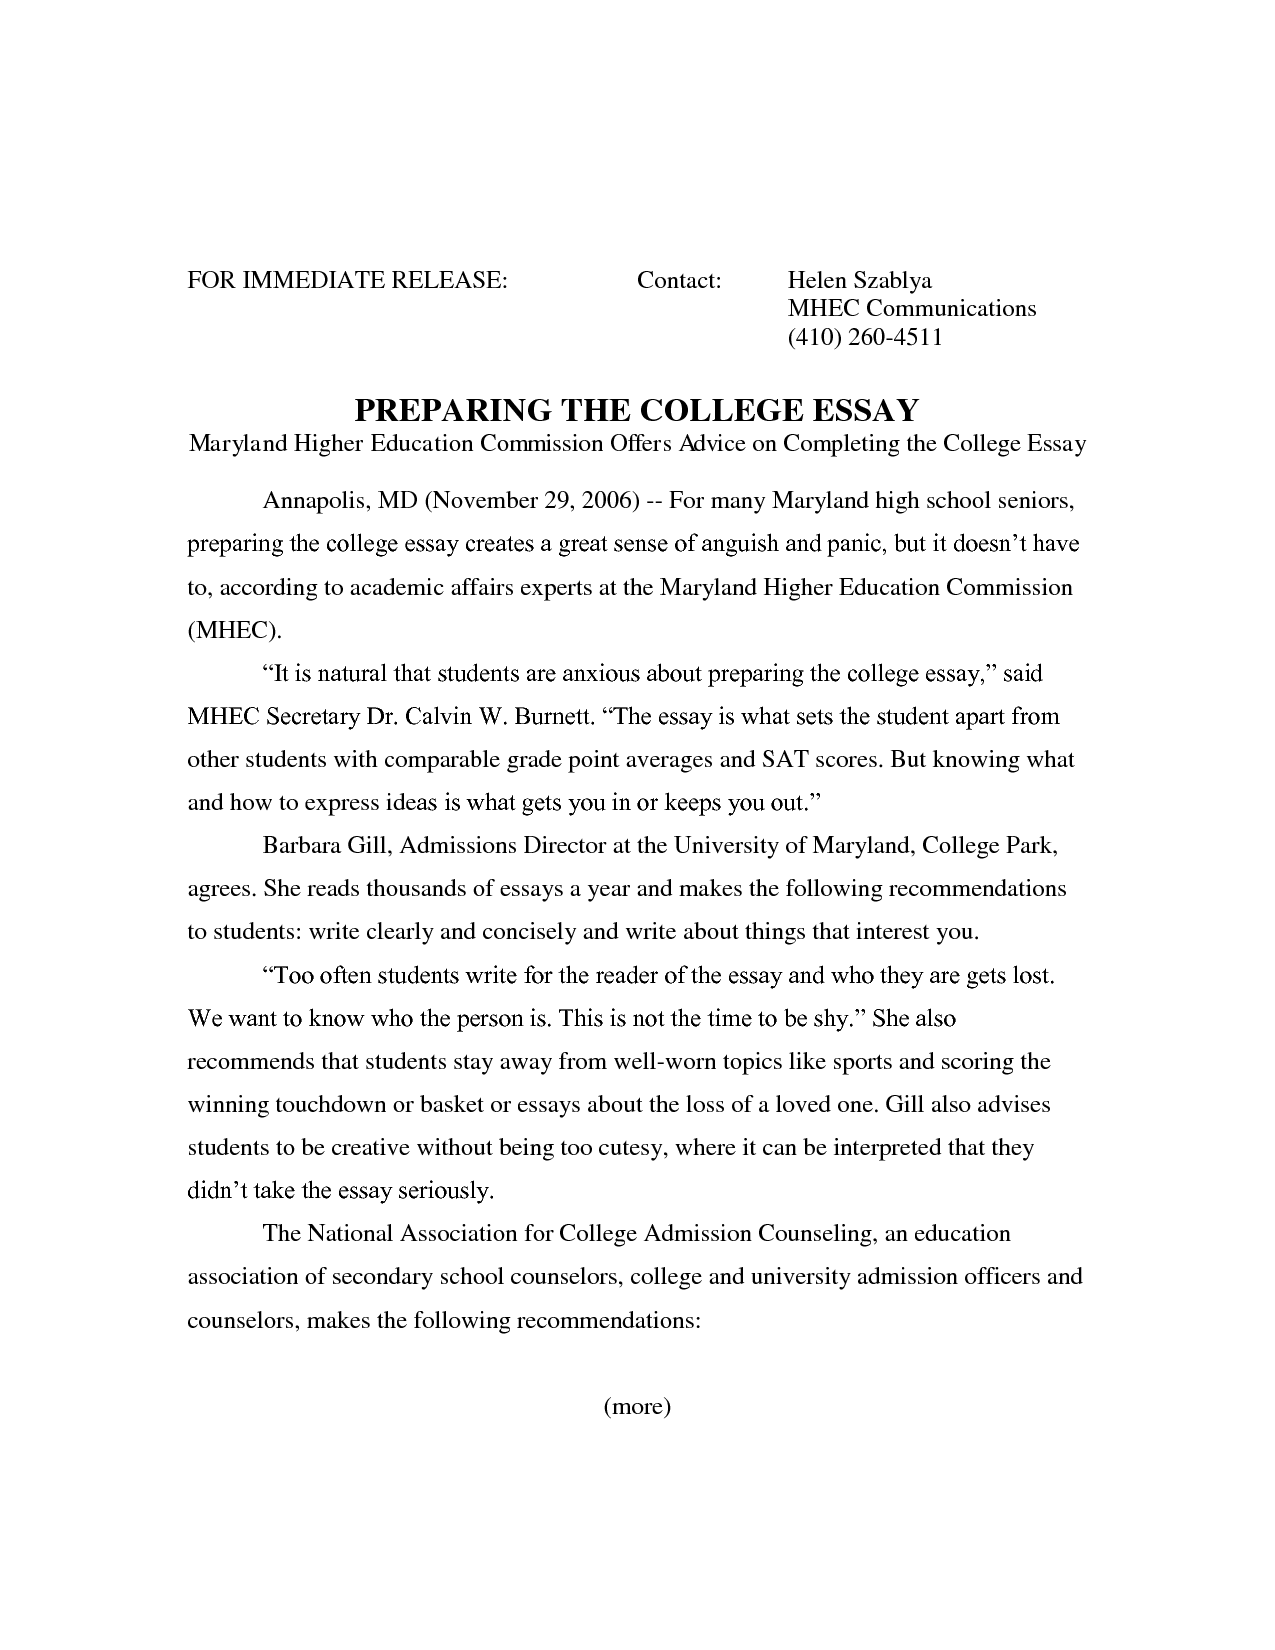 How To Write A Fantastic Awesome College Admission Essay Thesis  How To Write A Fantastic Awesome College Admission Essay Thesis Writing On  Onlineessayshelpercom